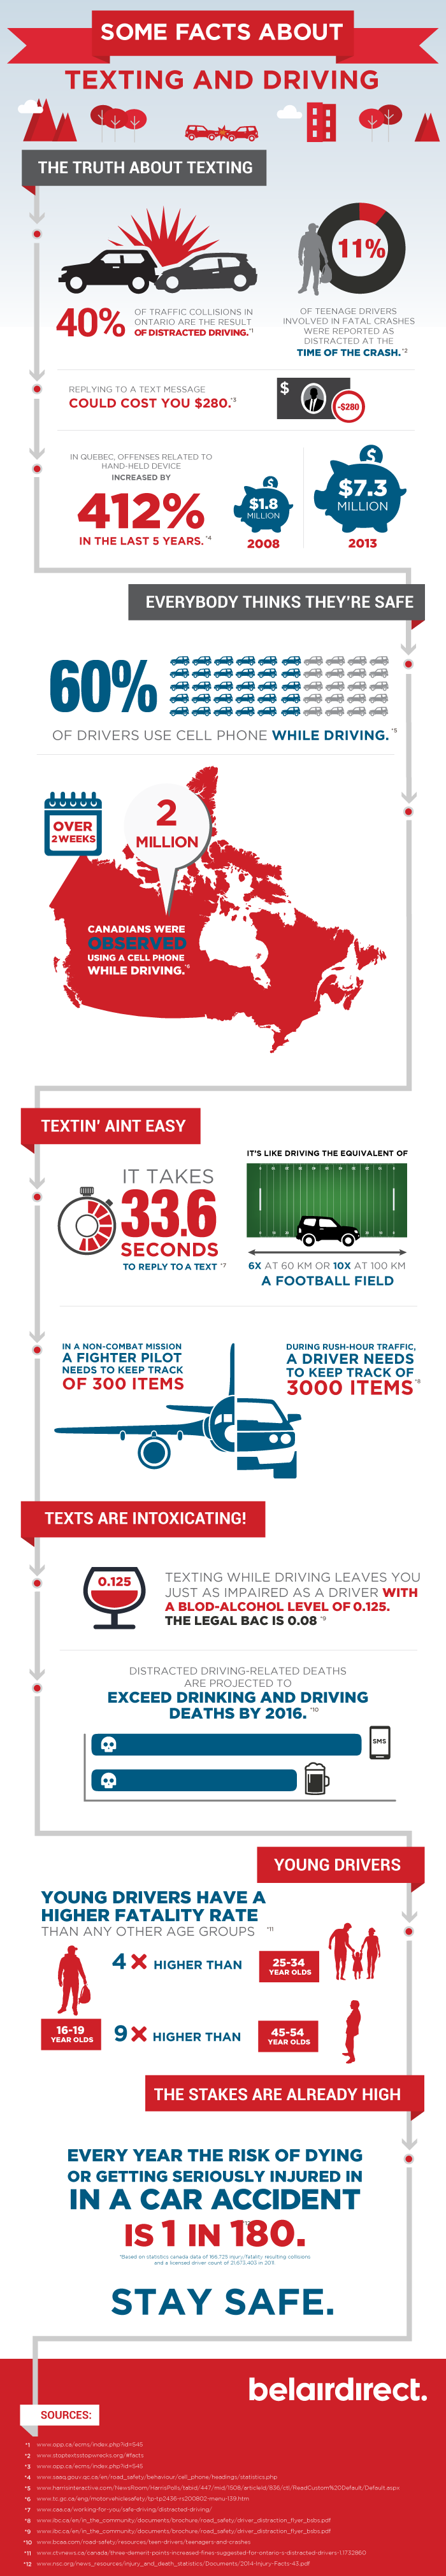 facts-about-texting-and-driving